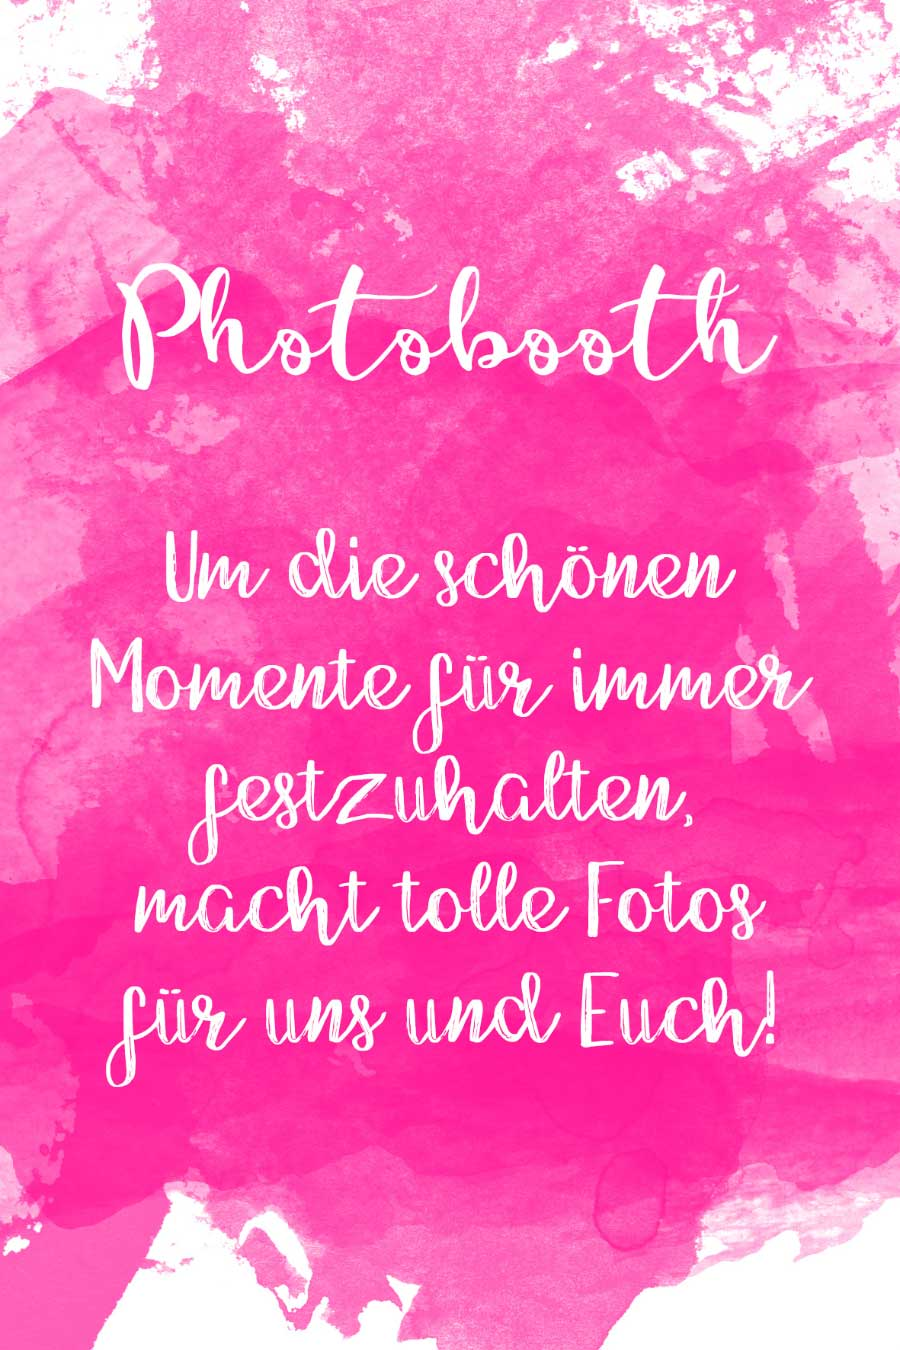 Photobooth Schild in Wasserfarben-Optik kostenlos zum Download